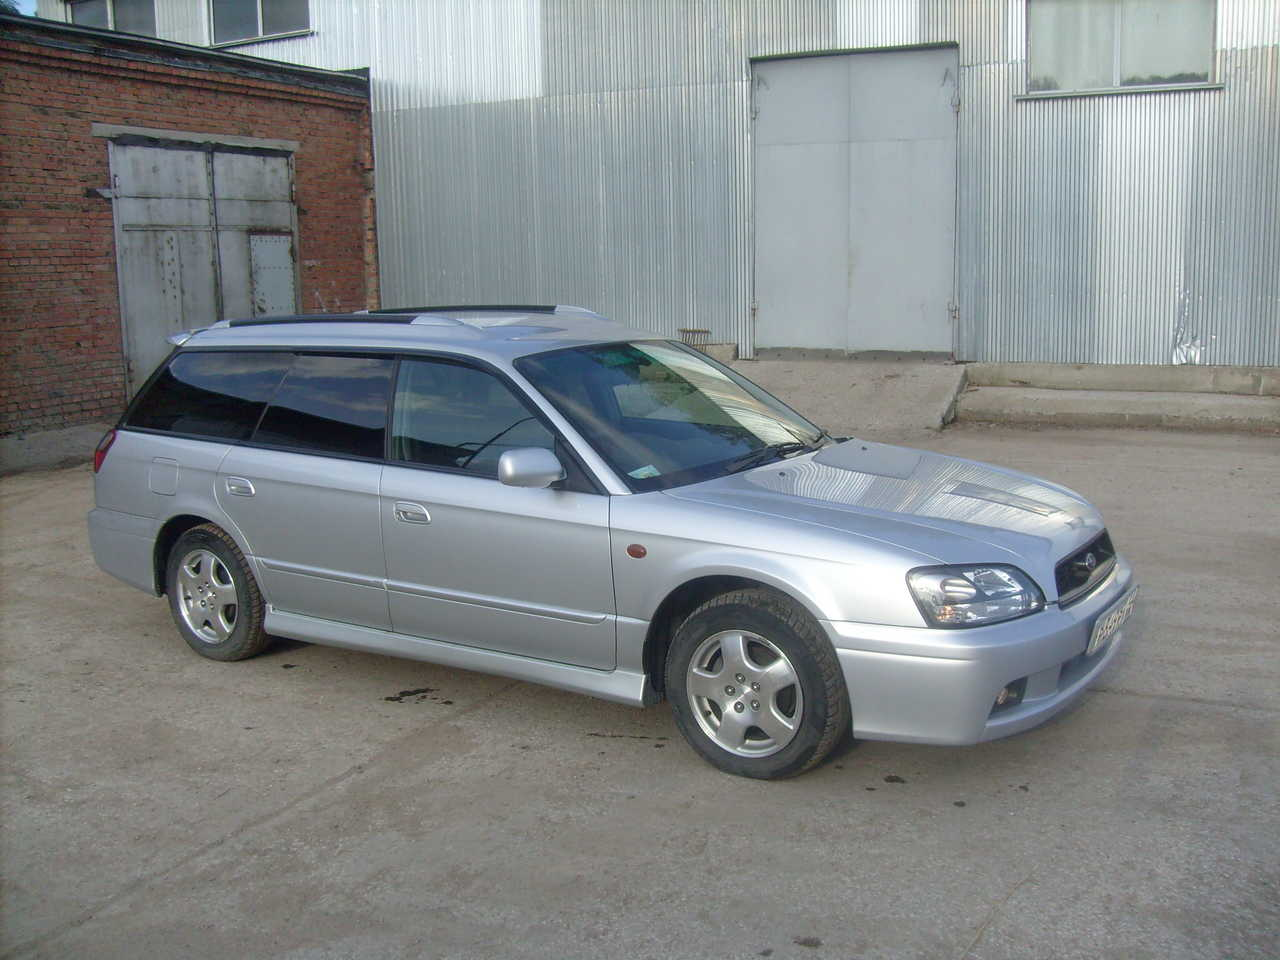 used 2002 subaru legacy wagon photos 2000cc gasoline automatic for sale. Black Bedroom Furniture Sets. Home Design Ideas